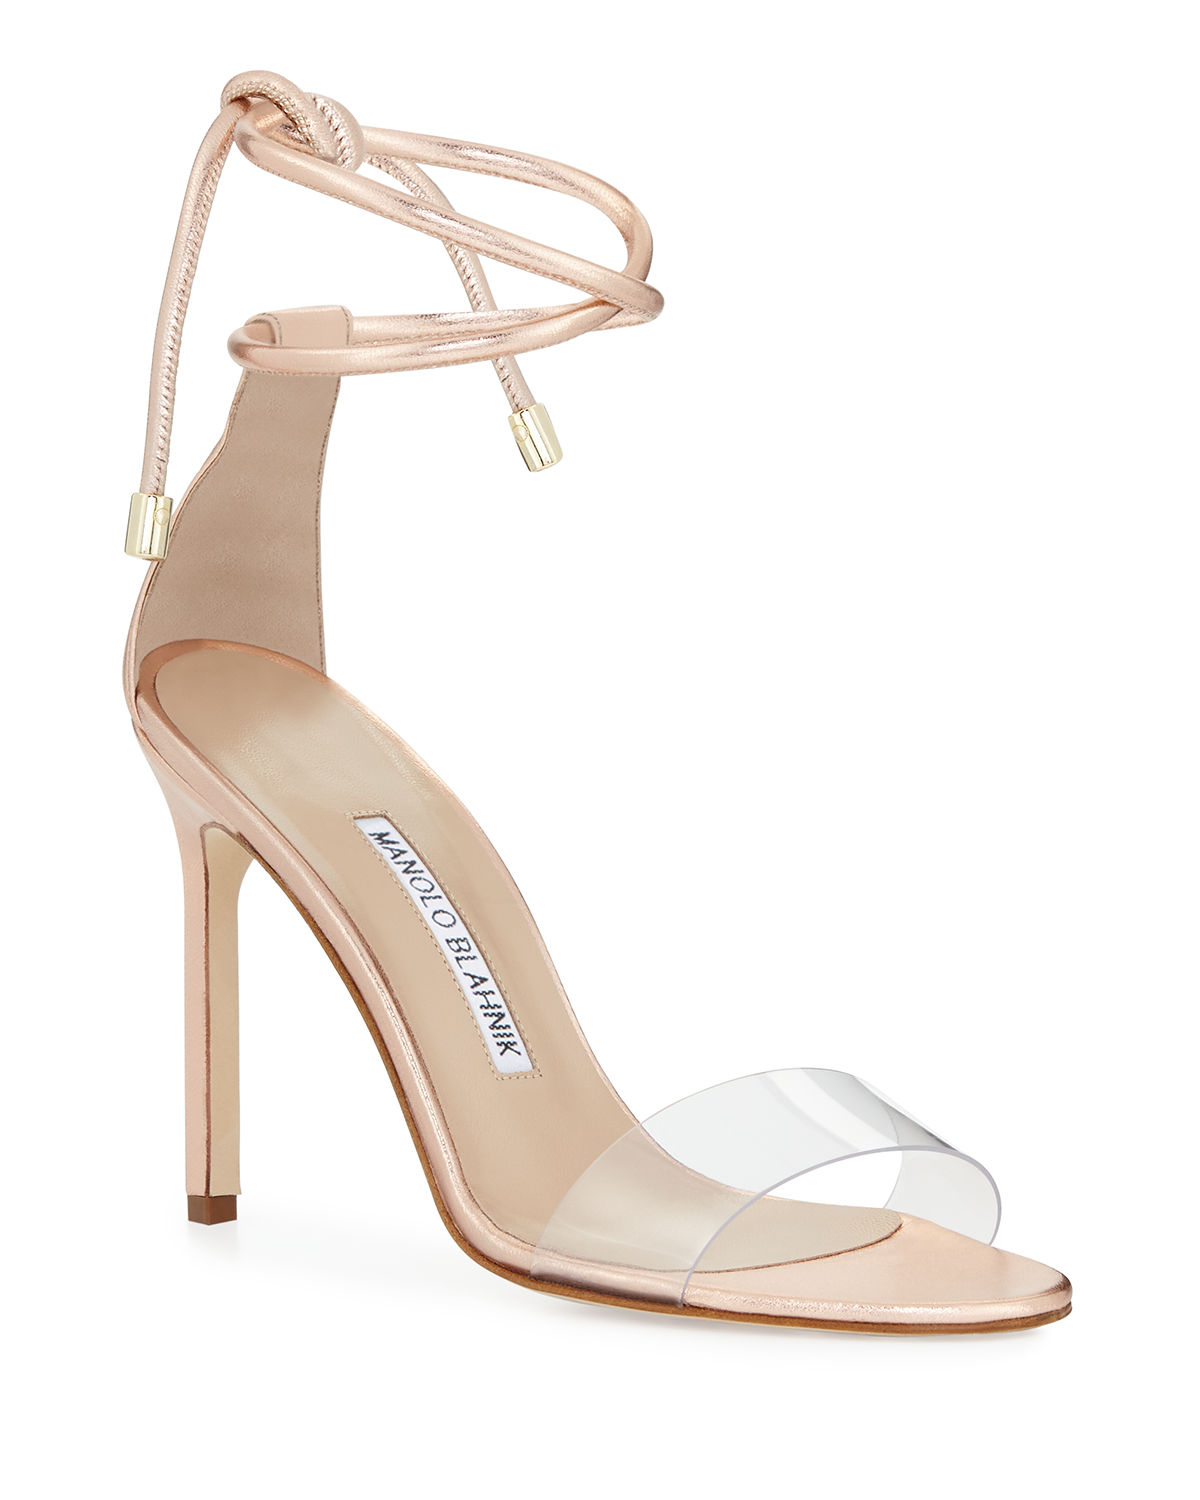 b606274fee7 Manolo Blahnik Estro Leather   PVC Ankle-Wrap Sandals